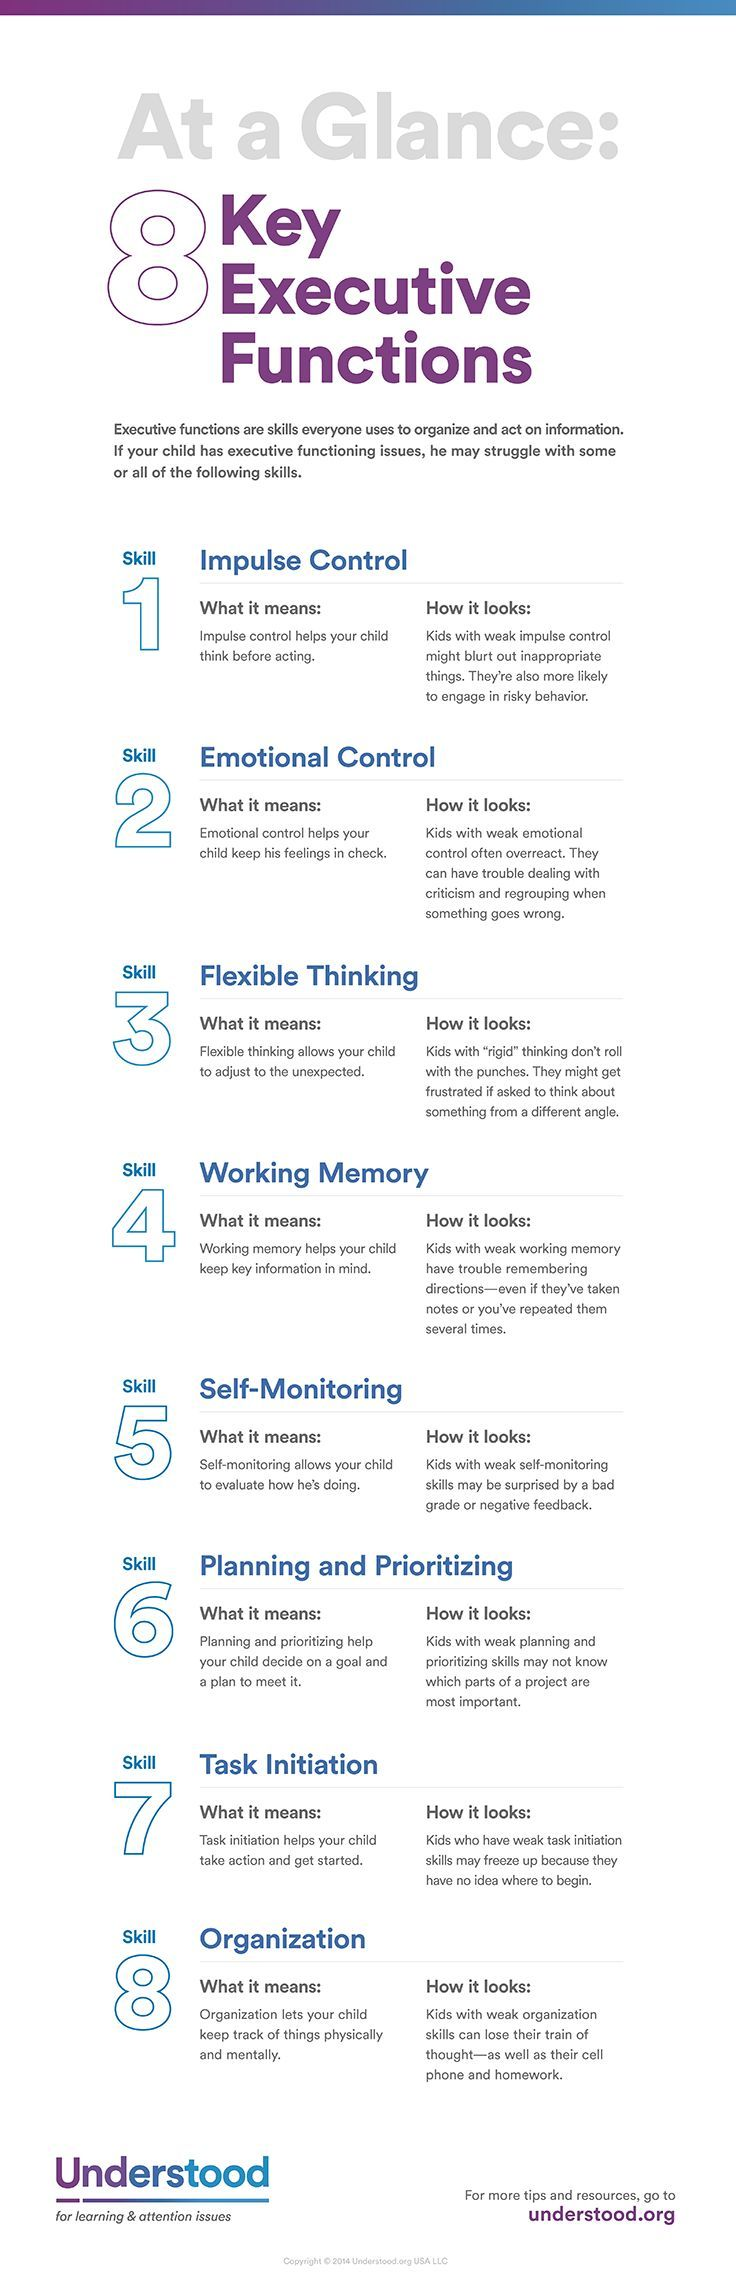 Executive functions let people plan, organize and complete tasks. Here's a closer look at this important set of skillsand how executive functioning issues can affect your child's everyday life.